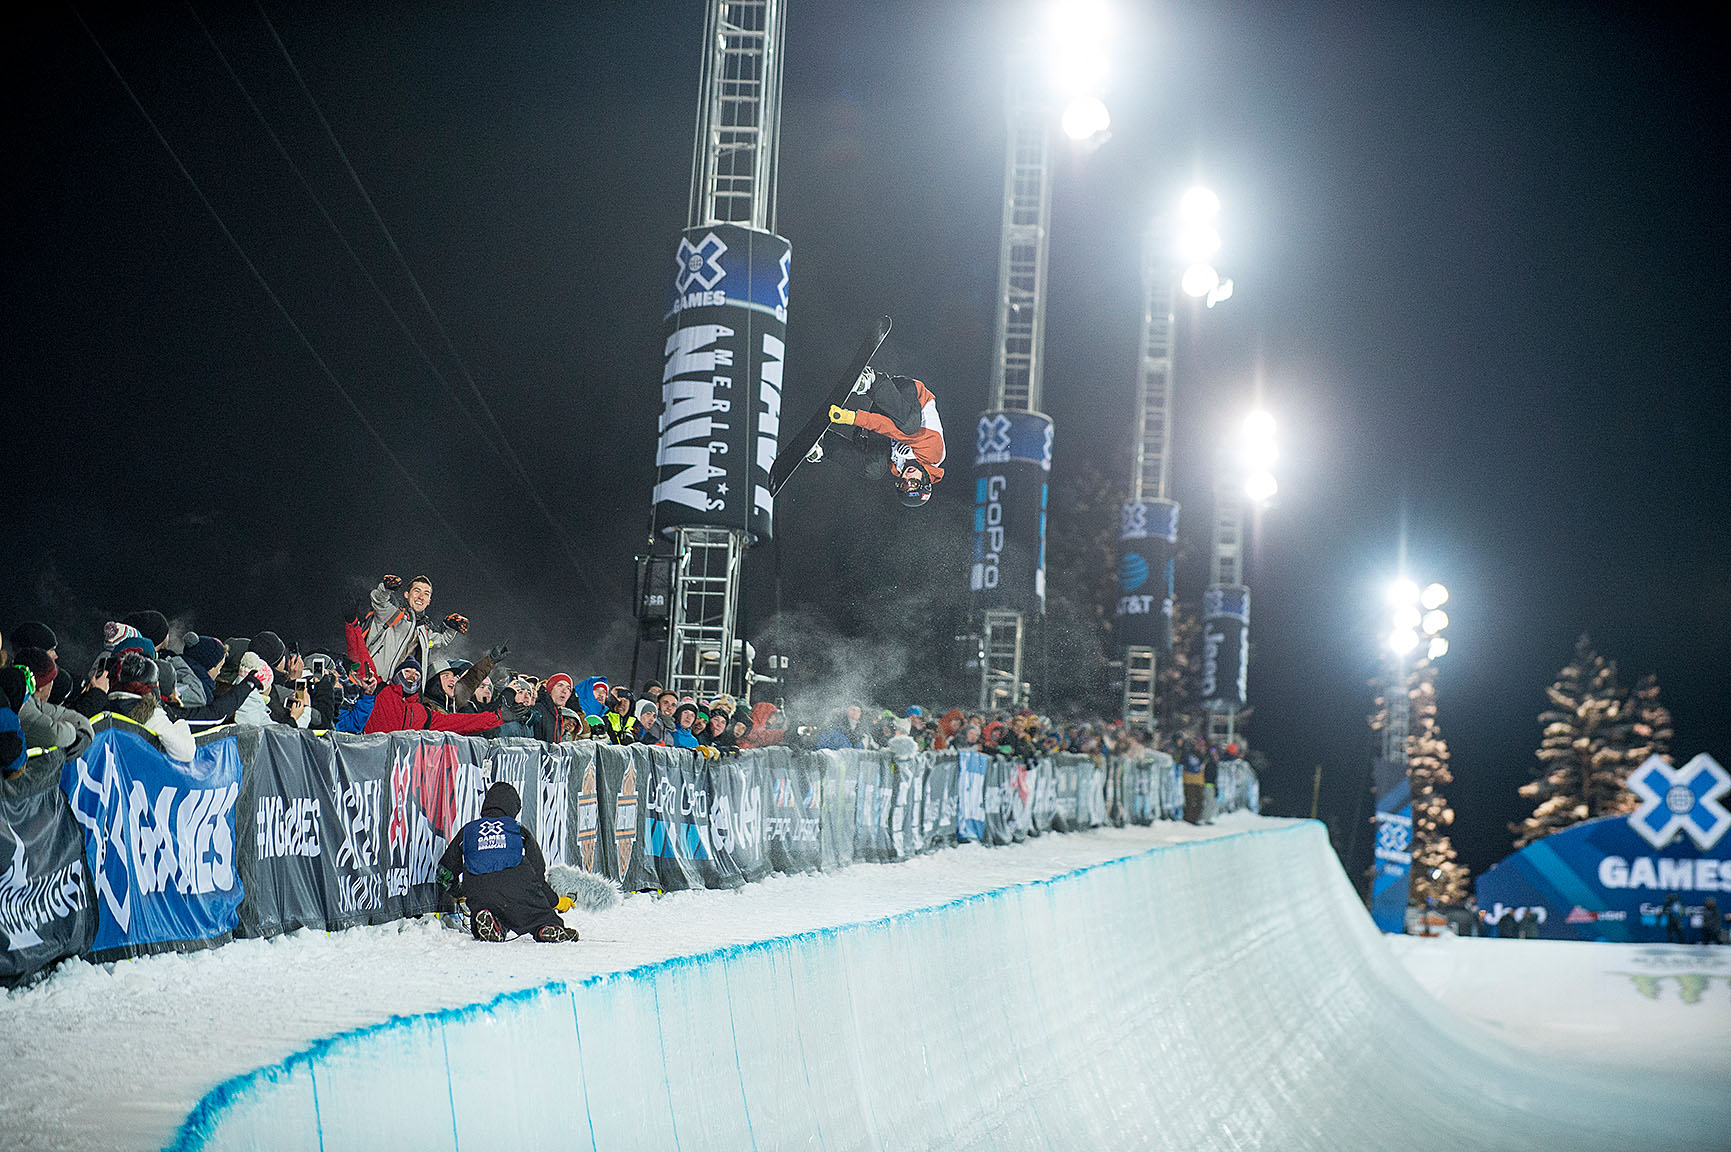 Taylor Gold broke his kneecap right before X Games last year and couldn't compete, but he seems to be fully healed from that injury now. Gold, brother of Arielle who will be competing in Women's Snowboard SuperPipe on Saturday night, made the X Games Aspen SuperPipe podium for the first time, finishing the night with a bronze medal.